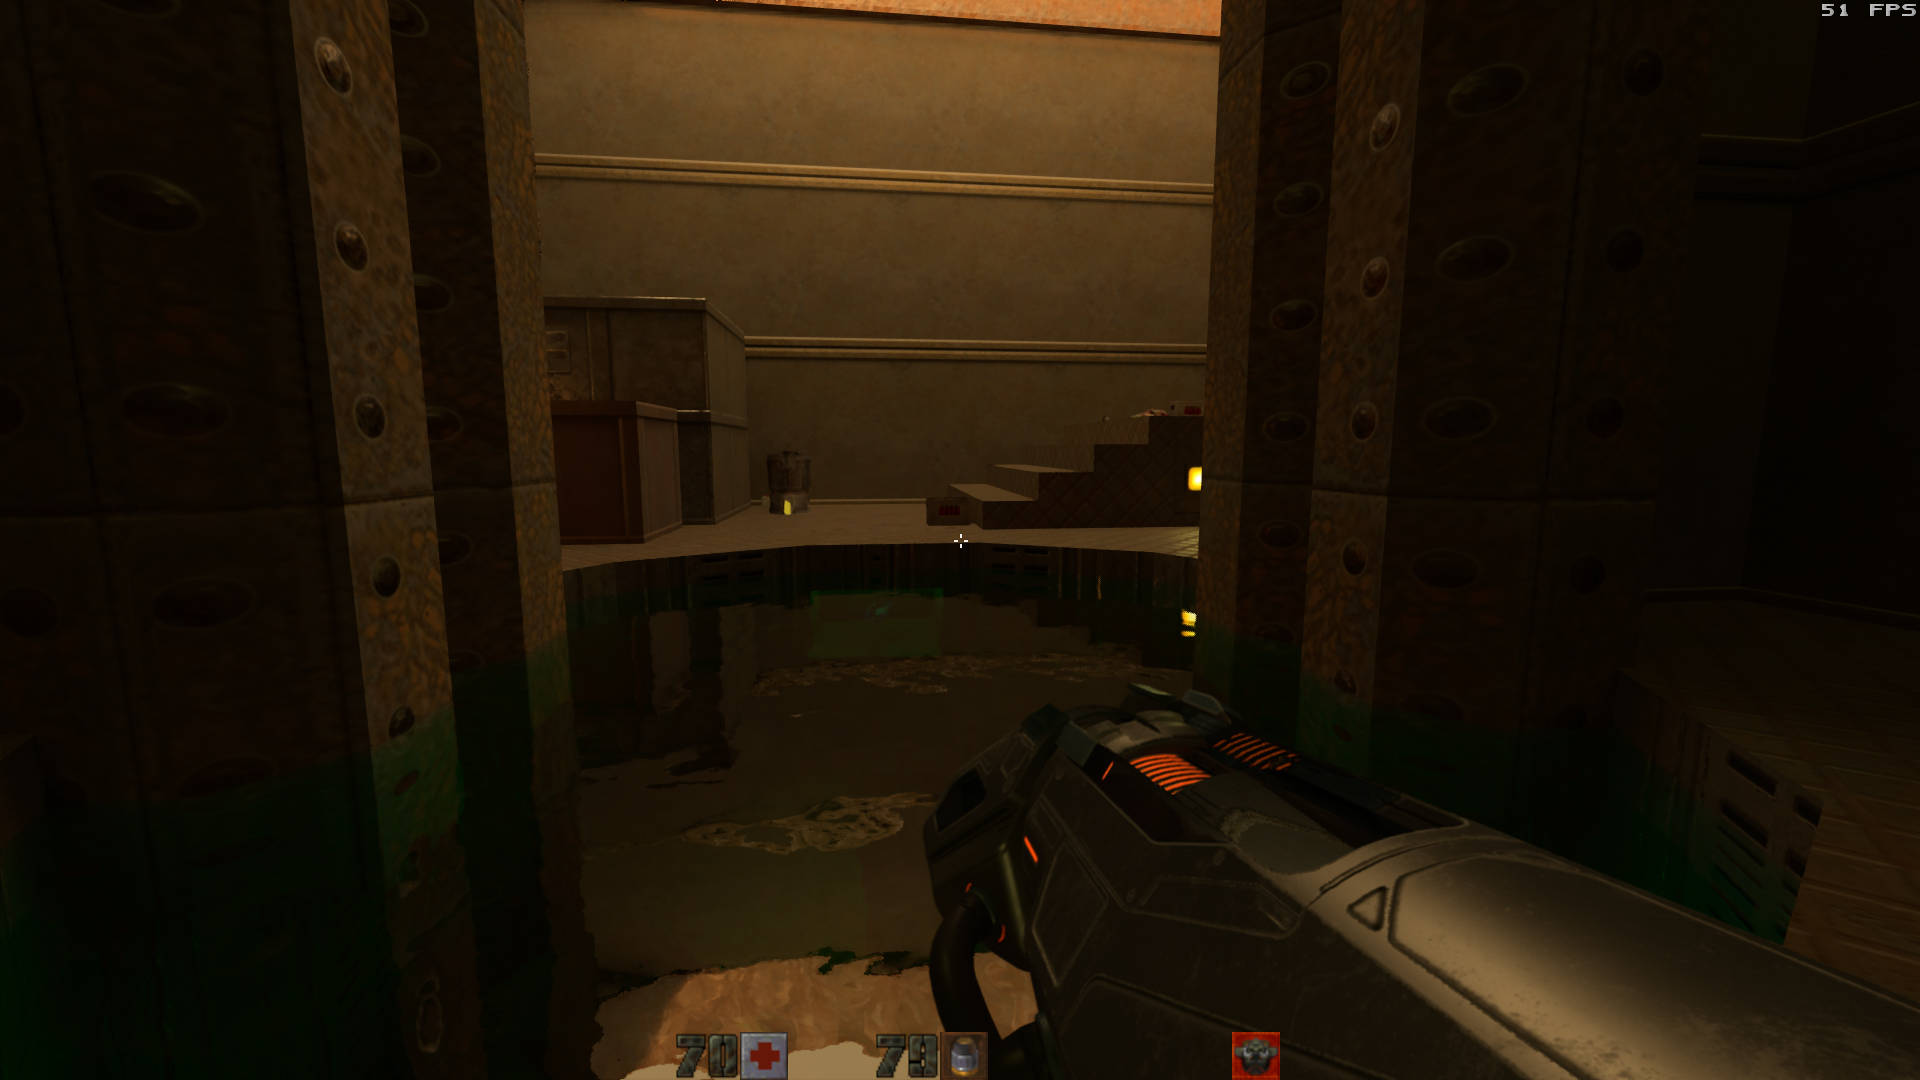 Quake 2 RTX Remaster Screenshot 2019.11.26 - 16.03.54.25.png